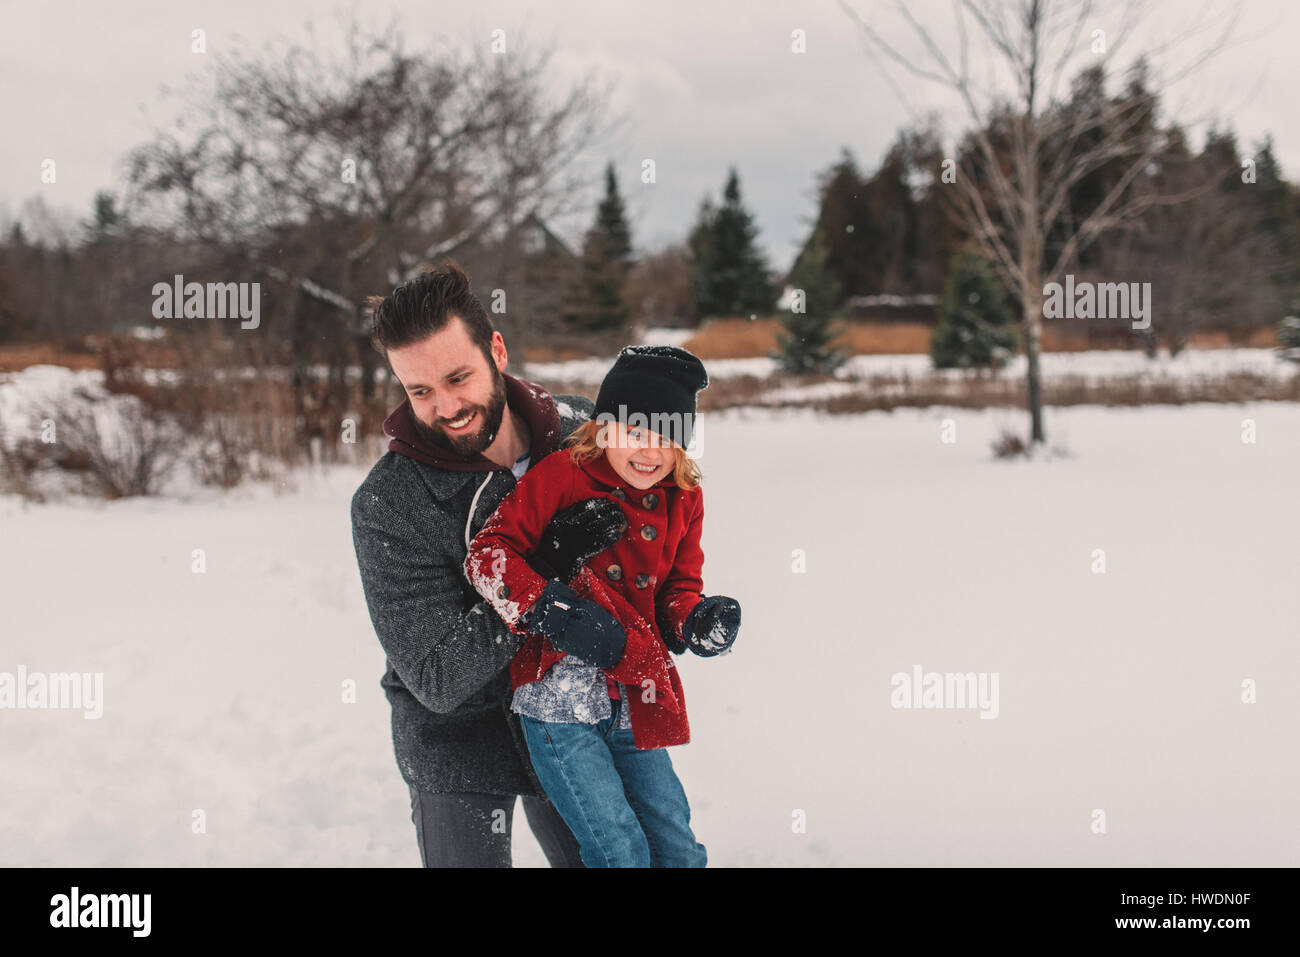 Father and daughter playing in snow - Stock Image